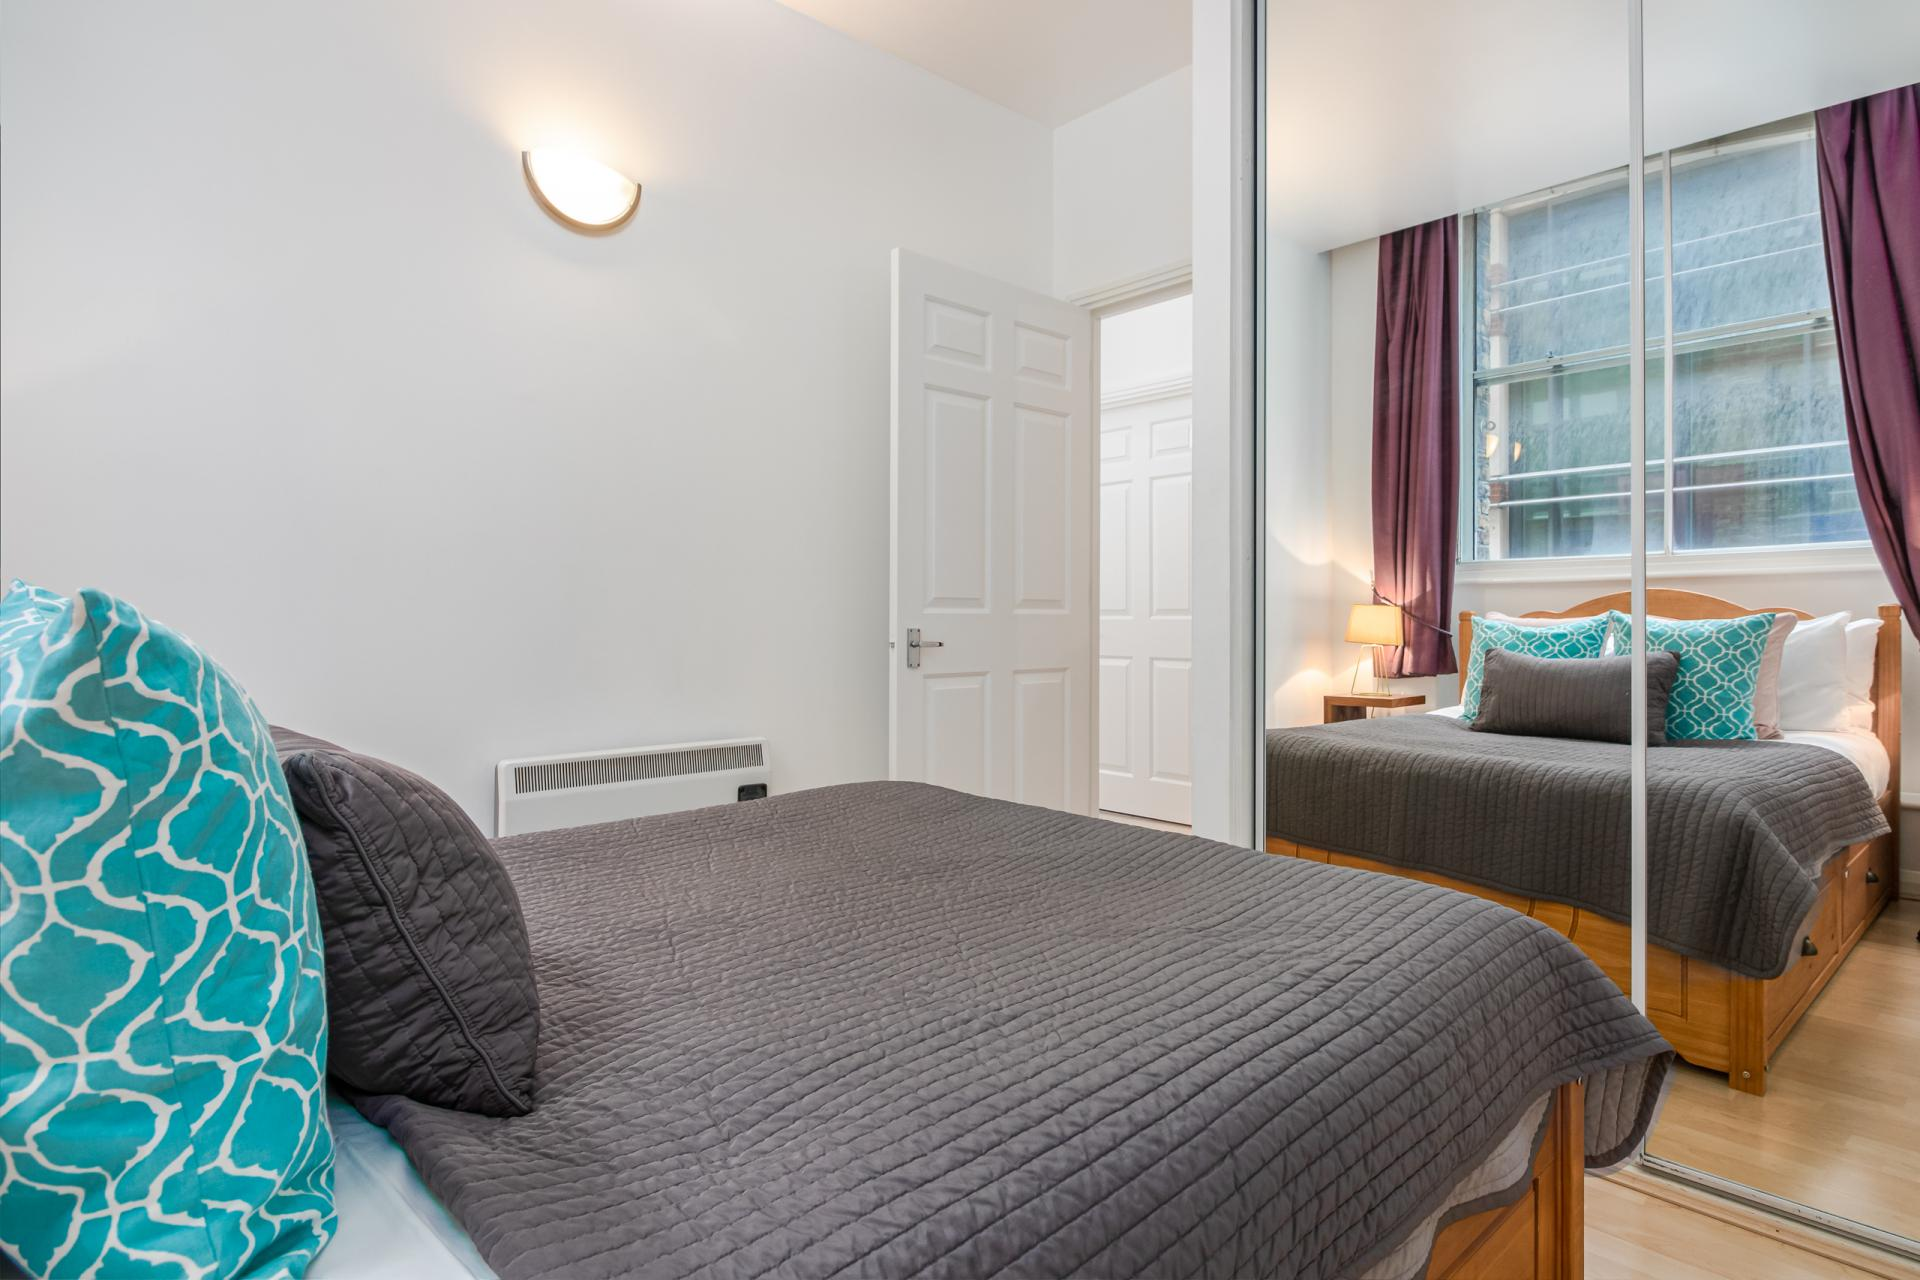 Bed at Priory House Apartments, City, London - Citybase Apartments